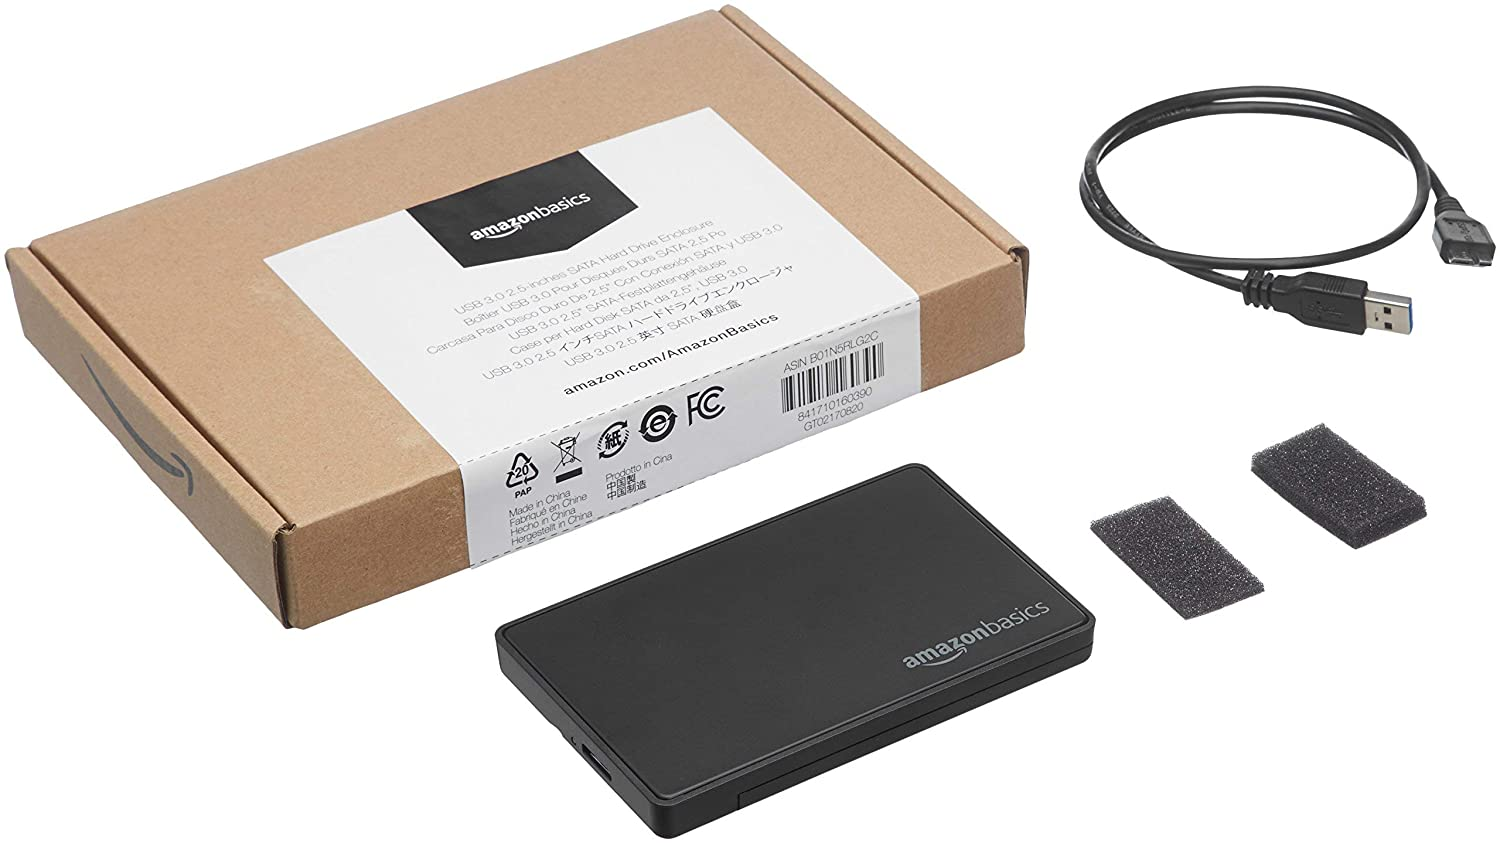 AmazonBasics 3.5-inches SATA HDD Hard Drive Enclosure - USB 3.0 (Renewed)